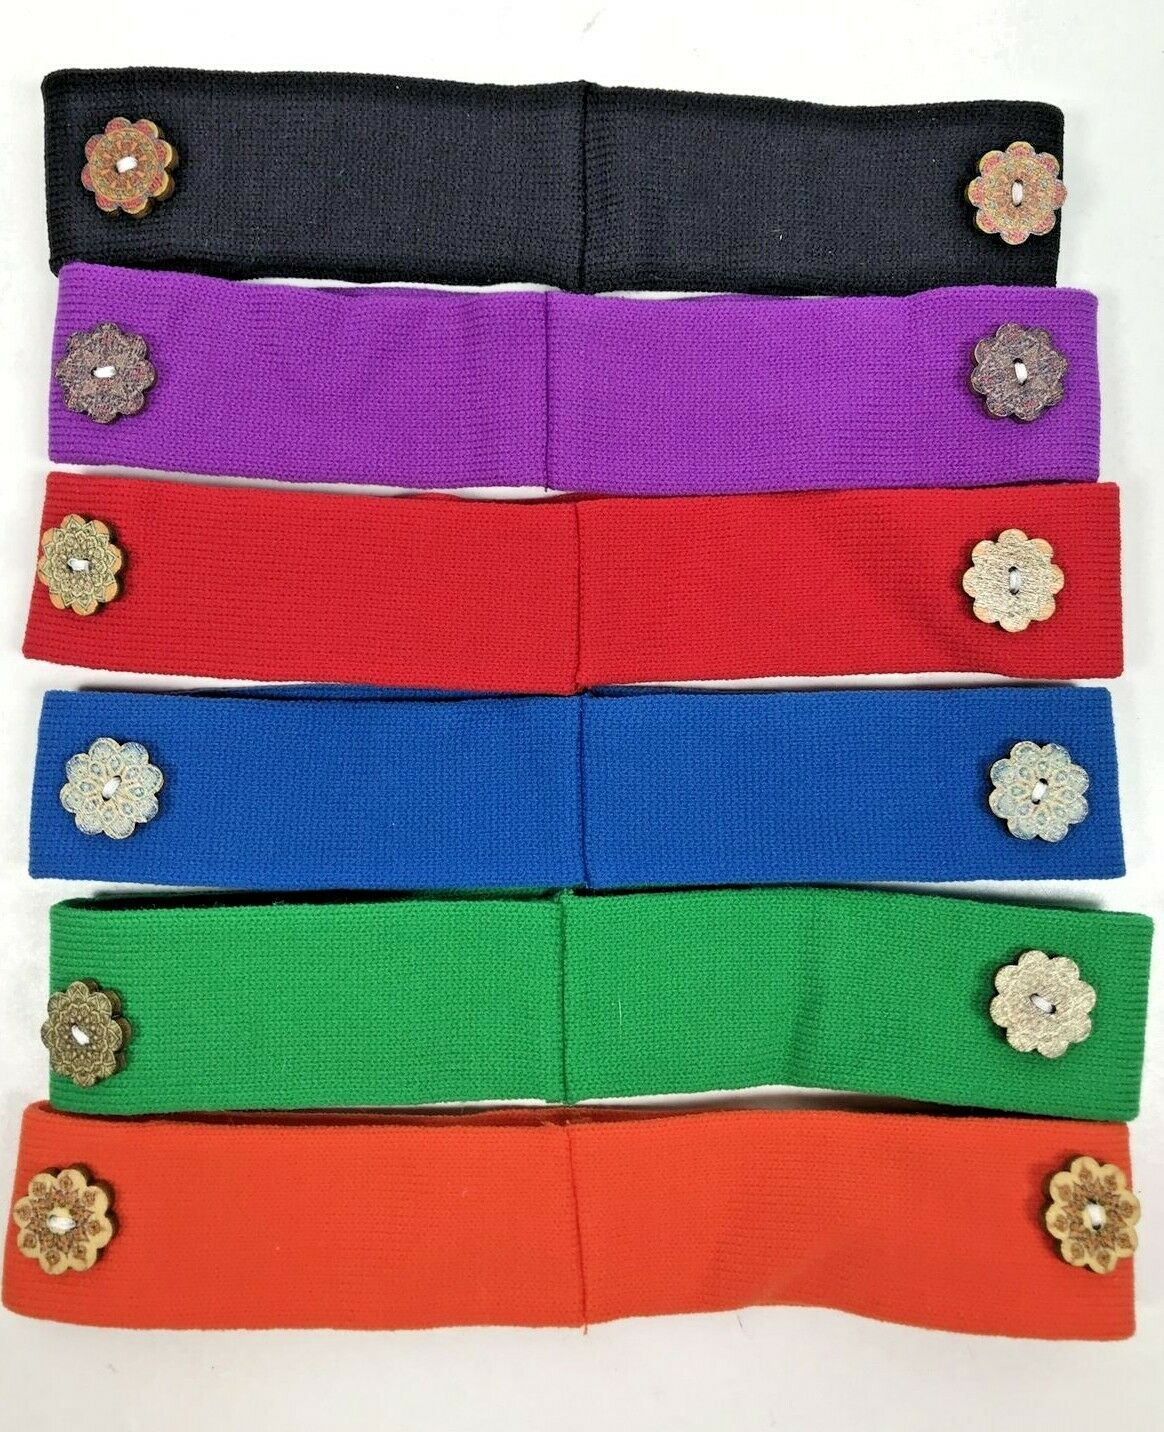 Lot of 6 Headbands with Boho Buttons for Face Mask Straps Lot A